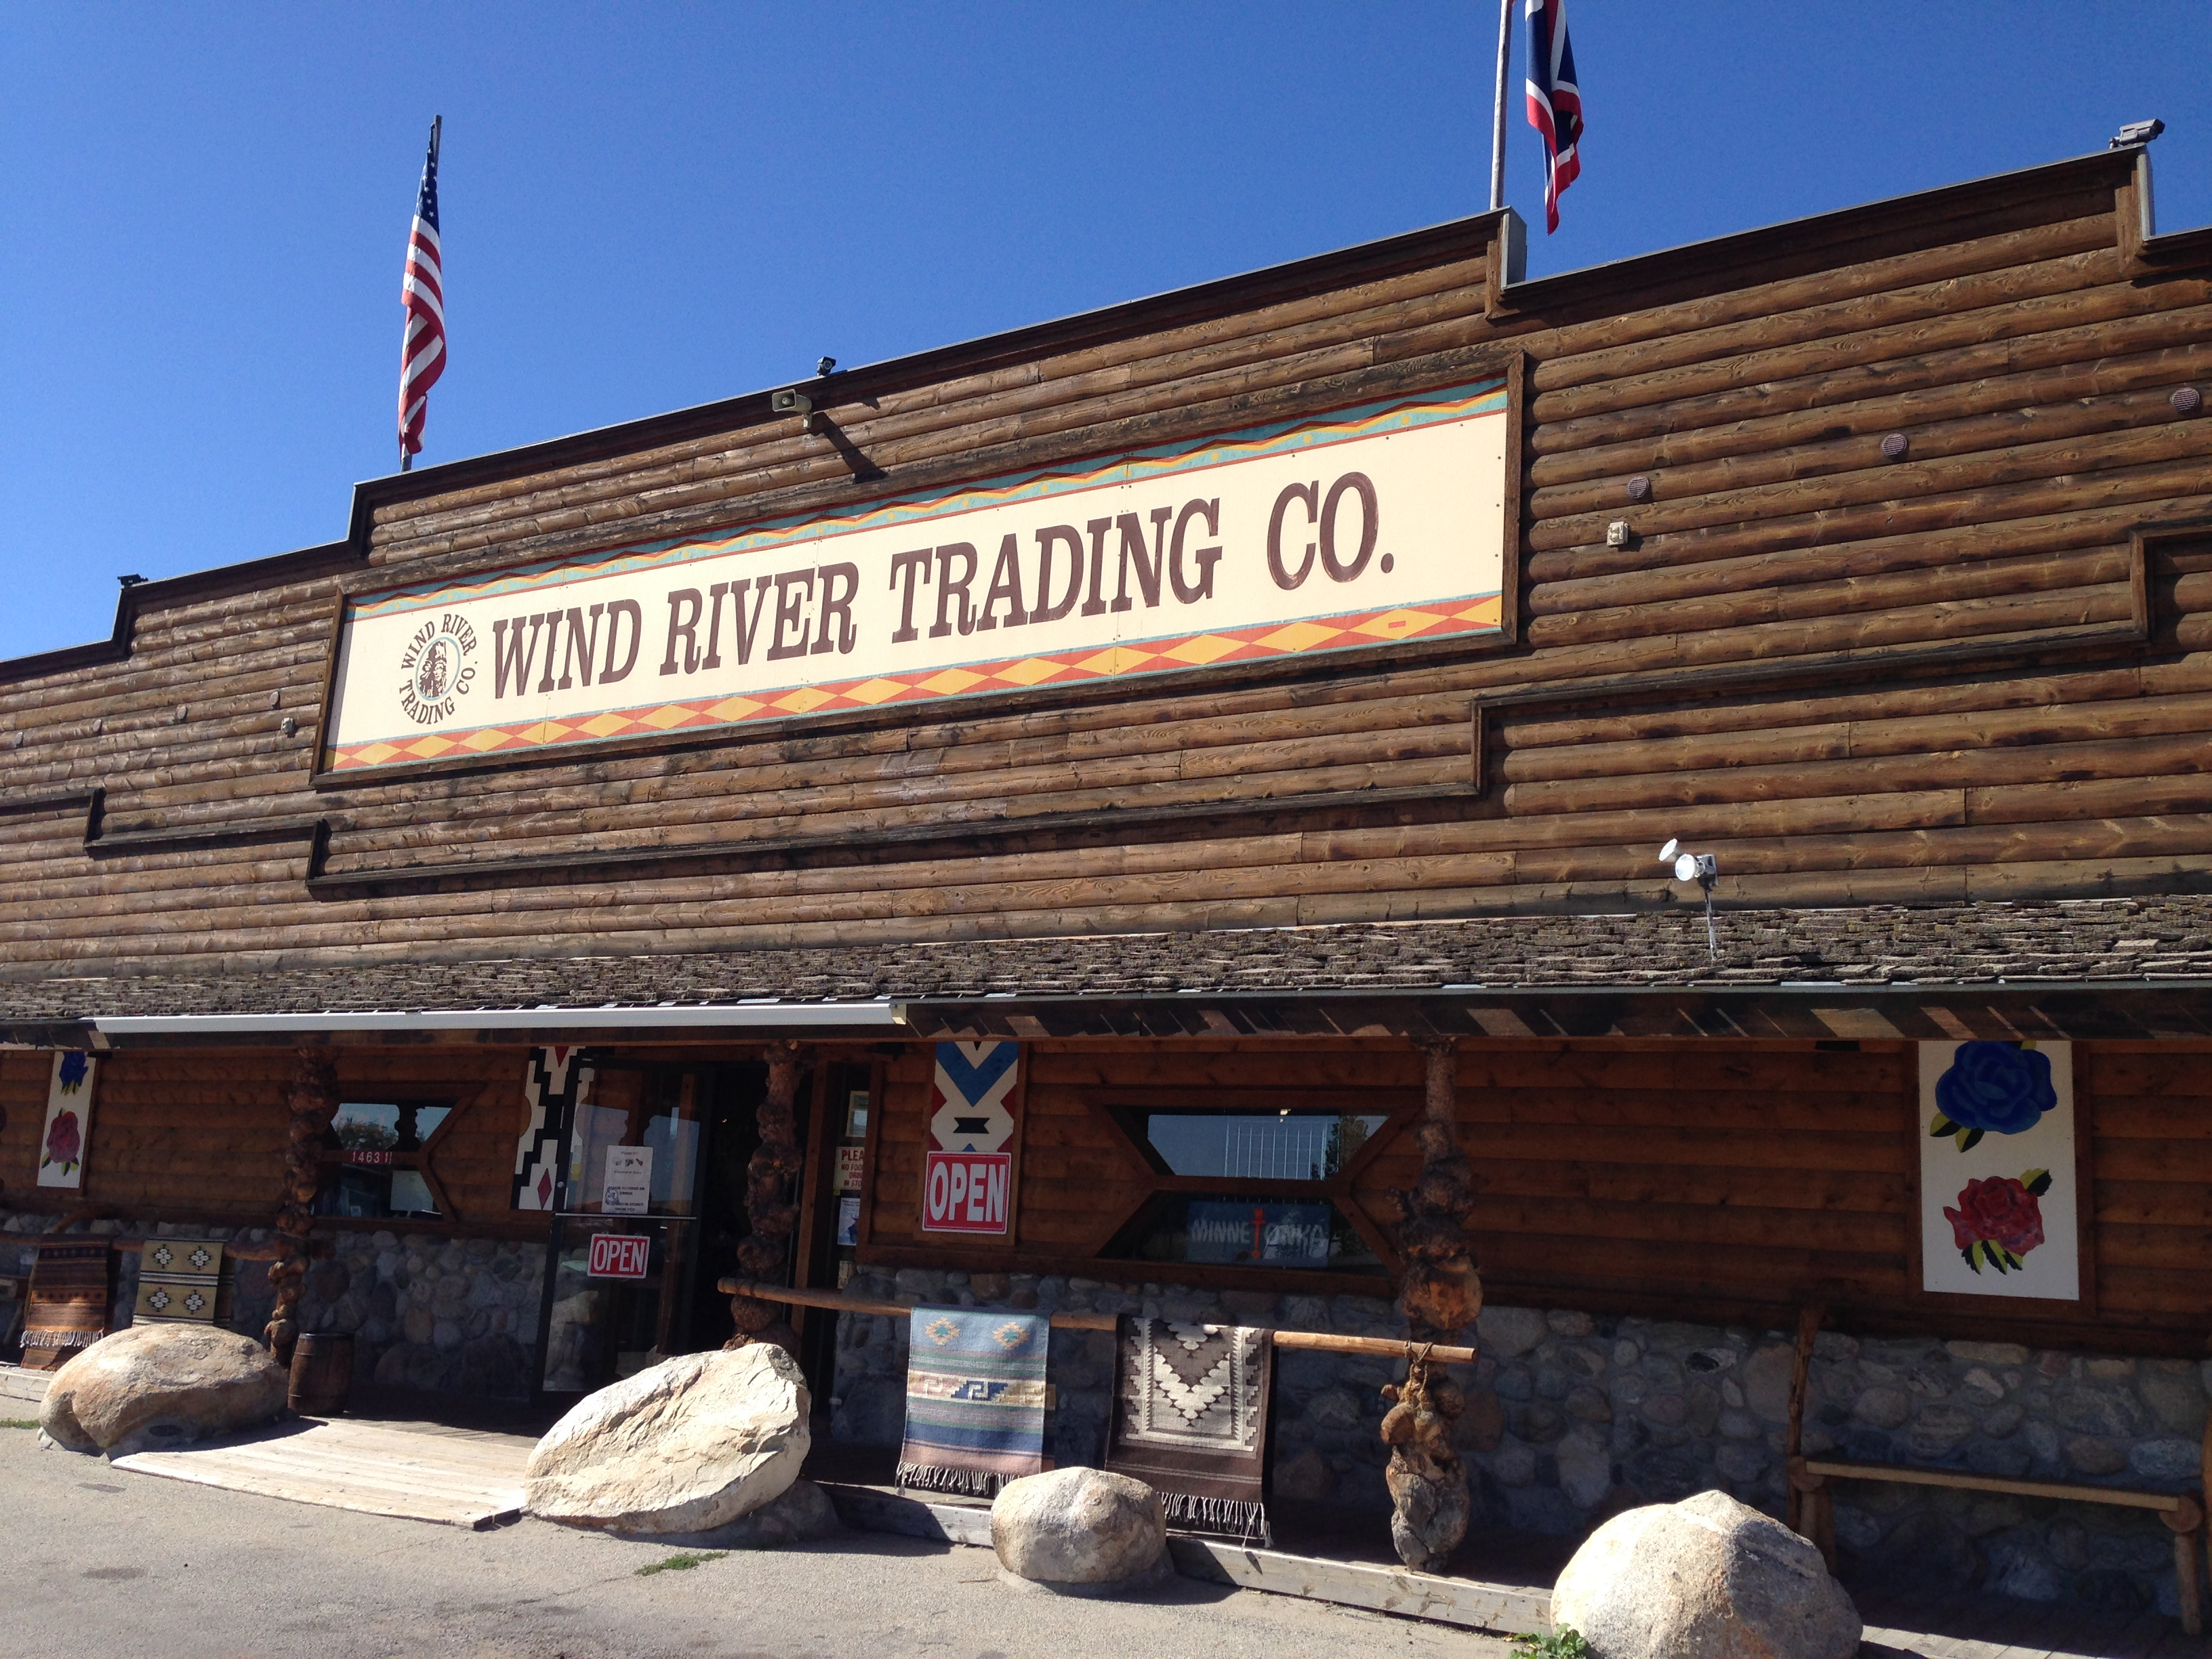 Wind River Trading Co.